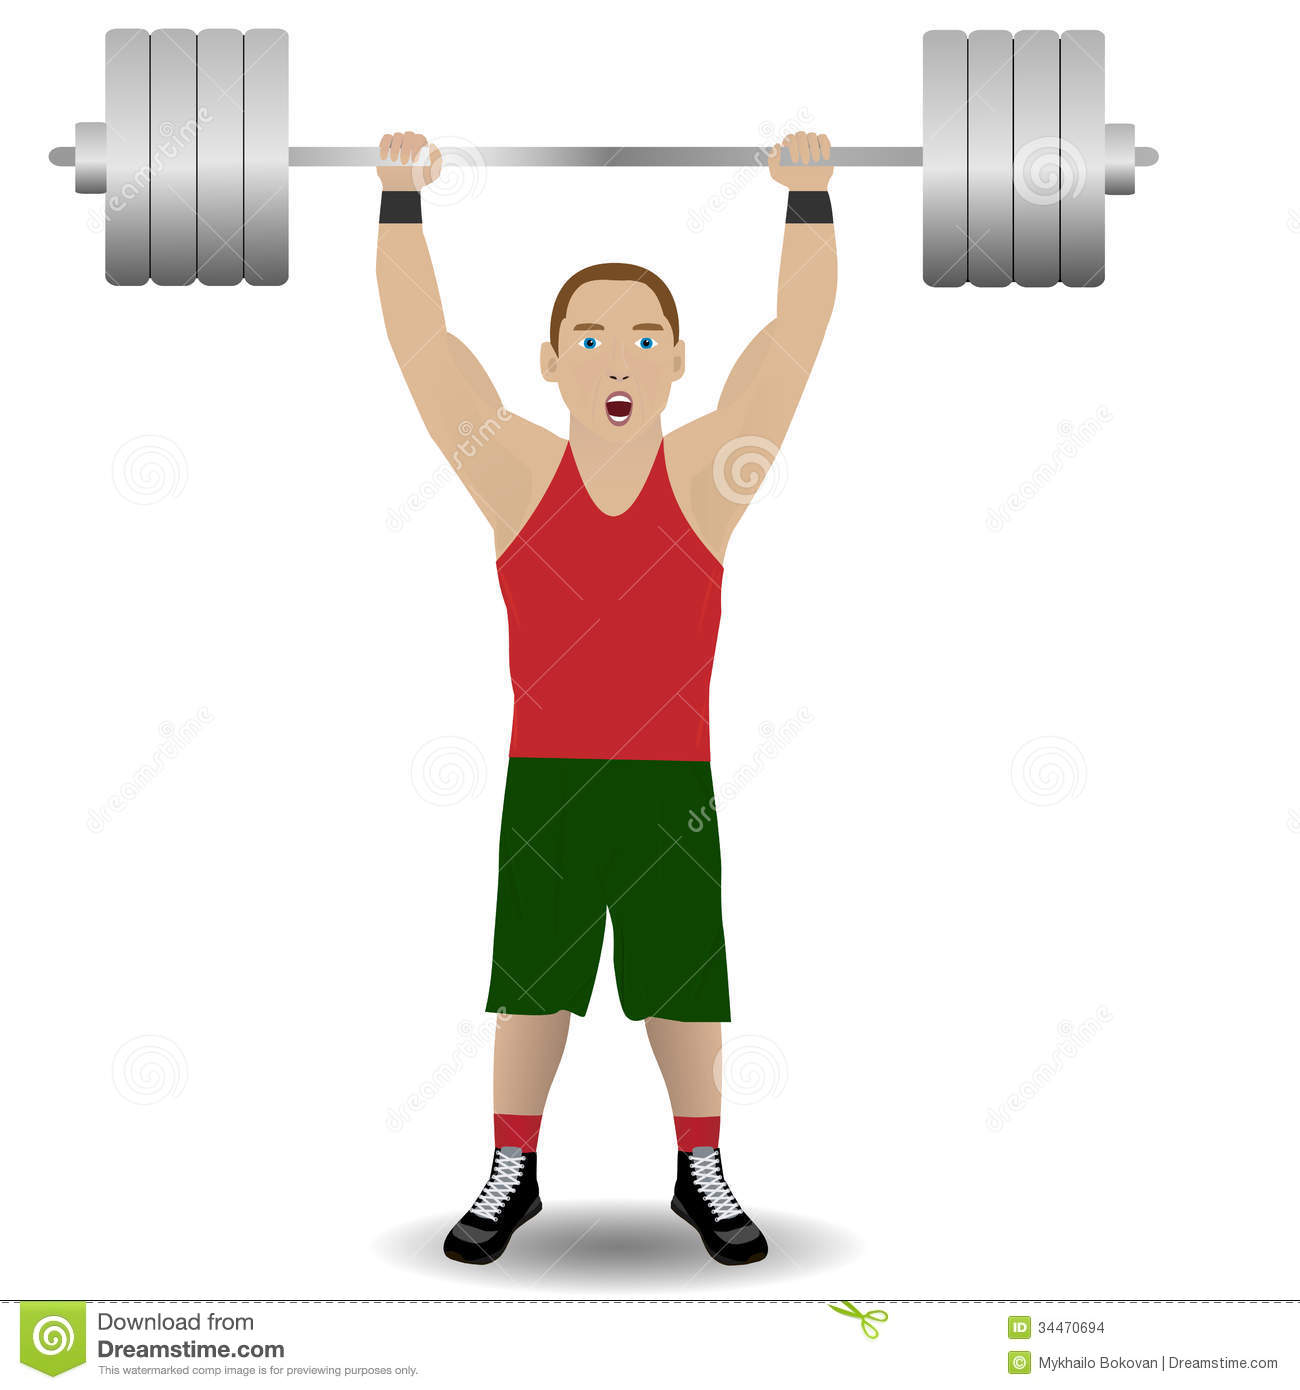 Illustration of weight-lifter on the white background.